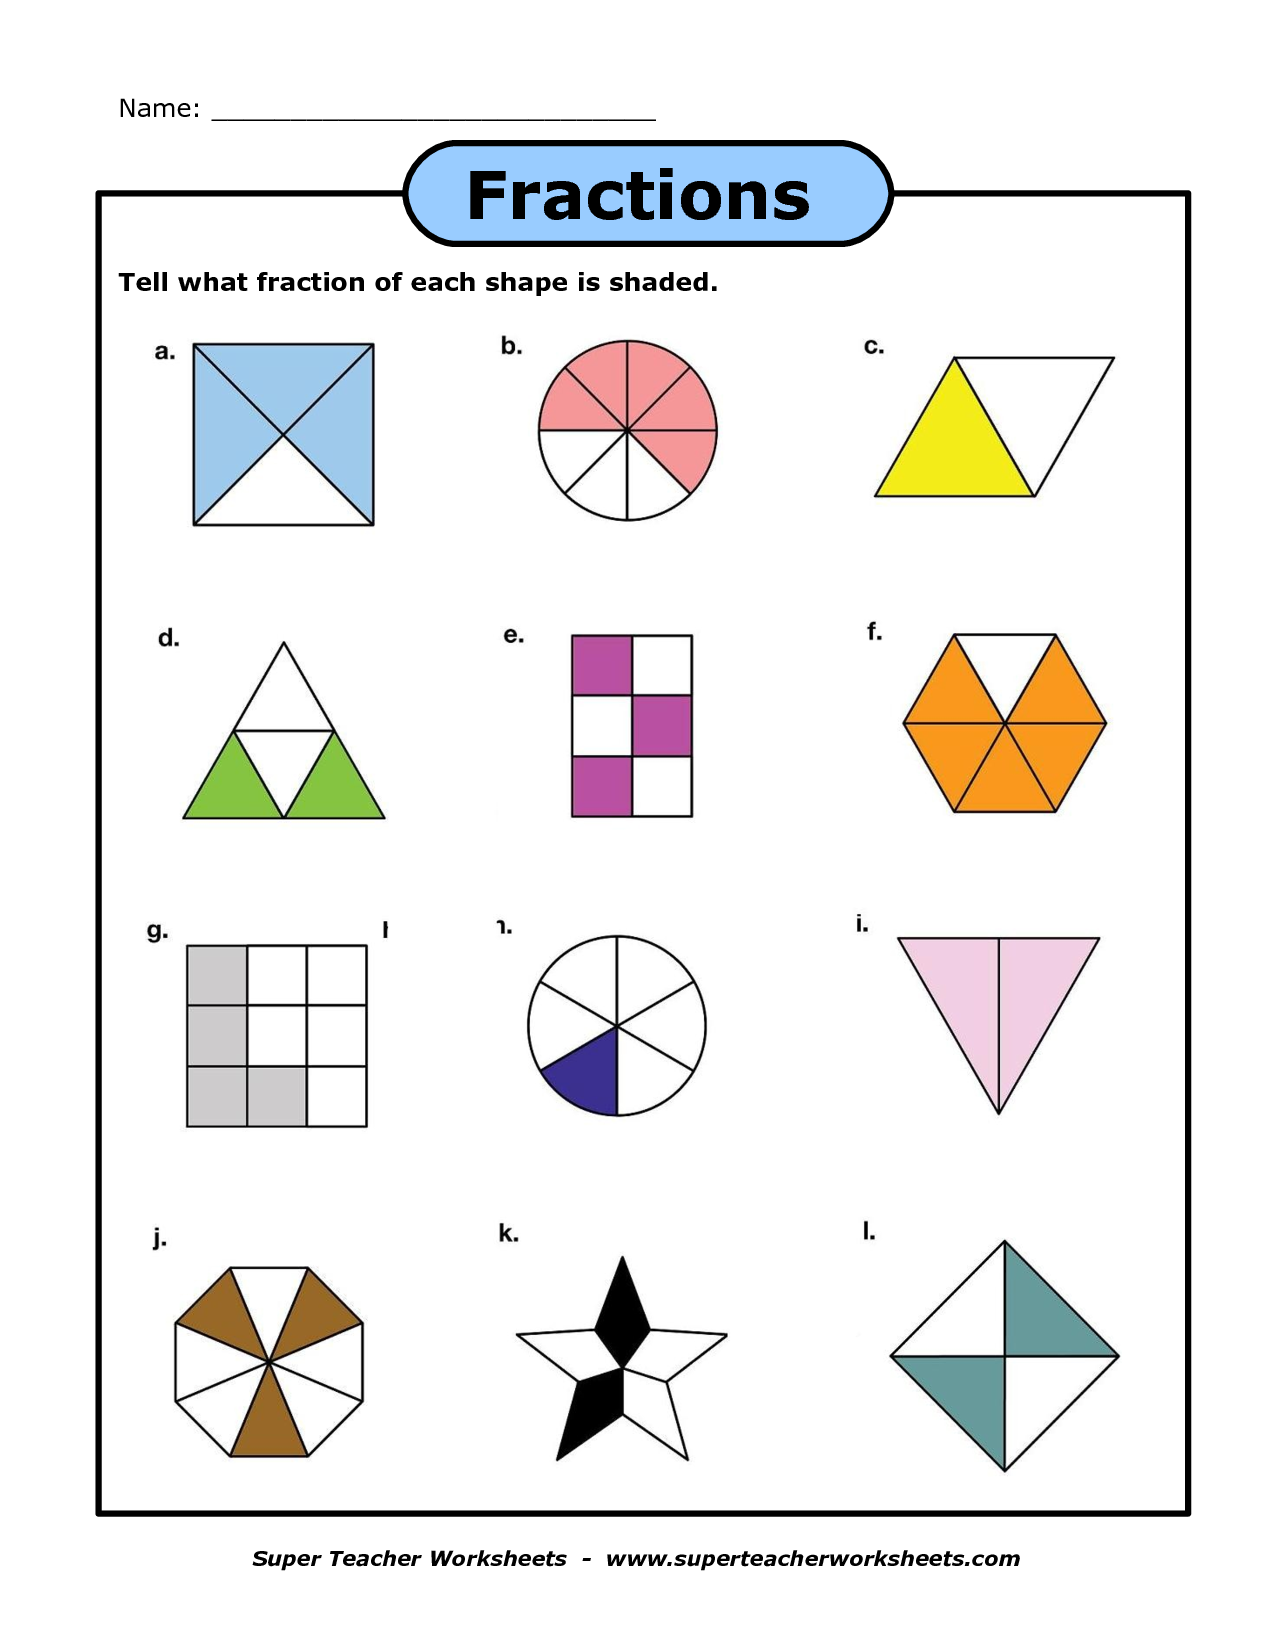 shaded fractions worksheet Brandonbriceus – Shaded Fractions Worksheet